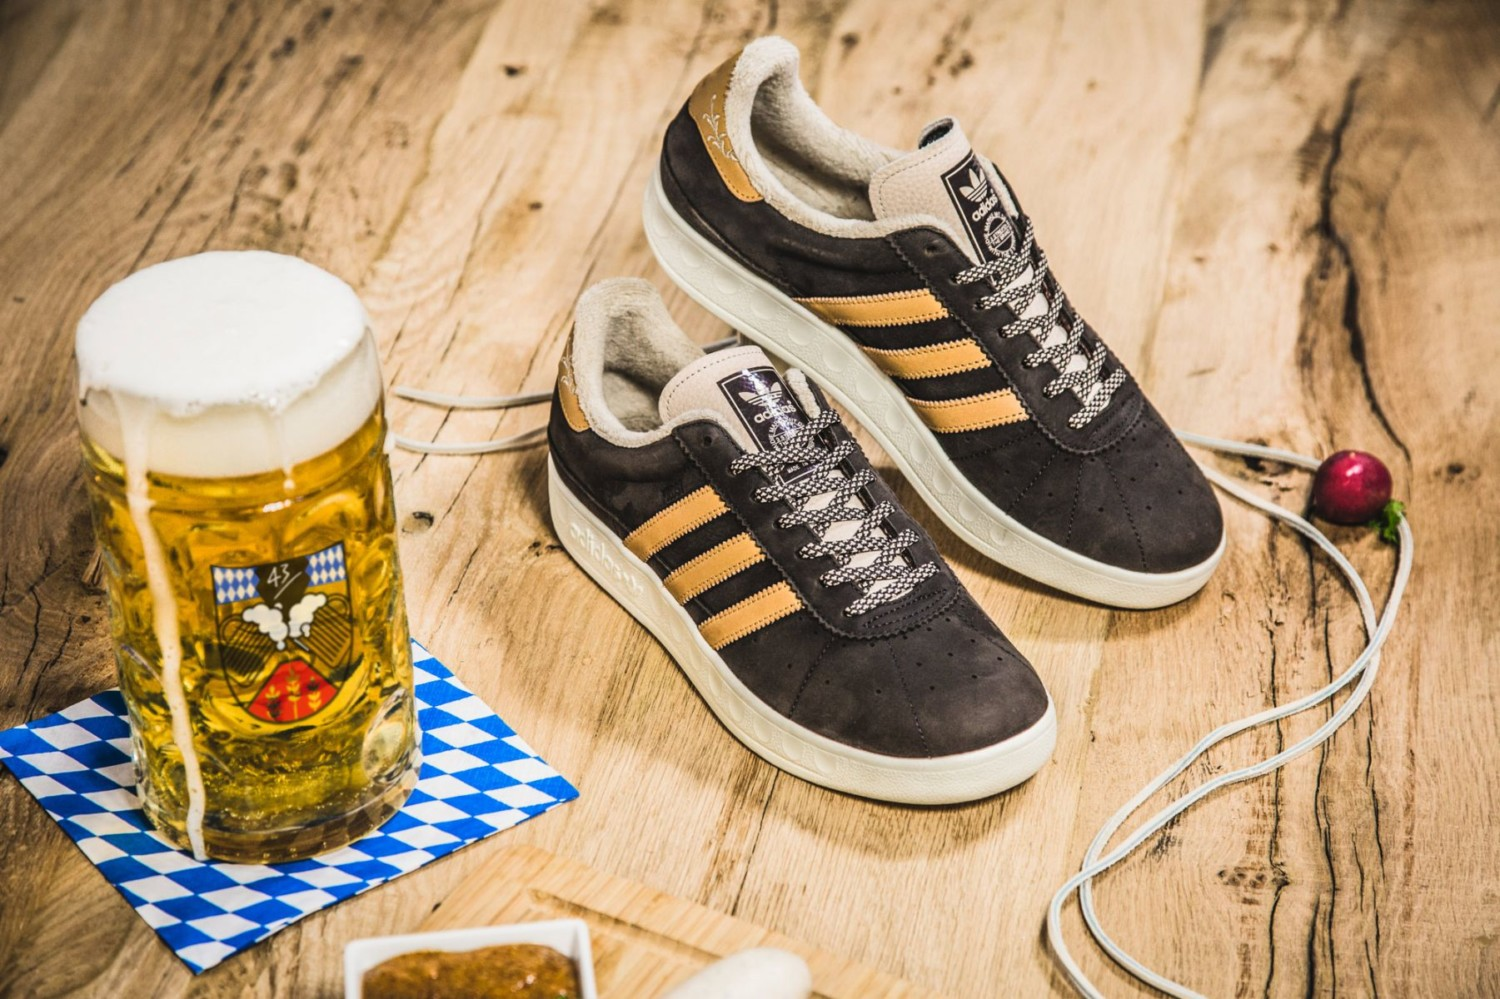 Adidas launch beer and vomit proof trainers just in time for